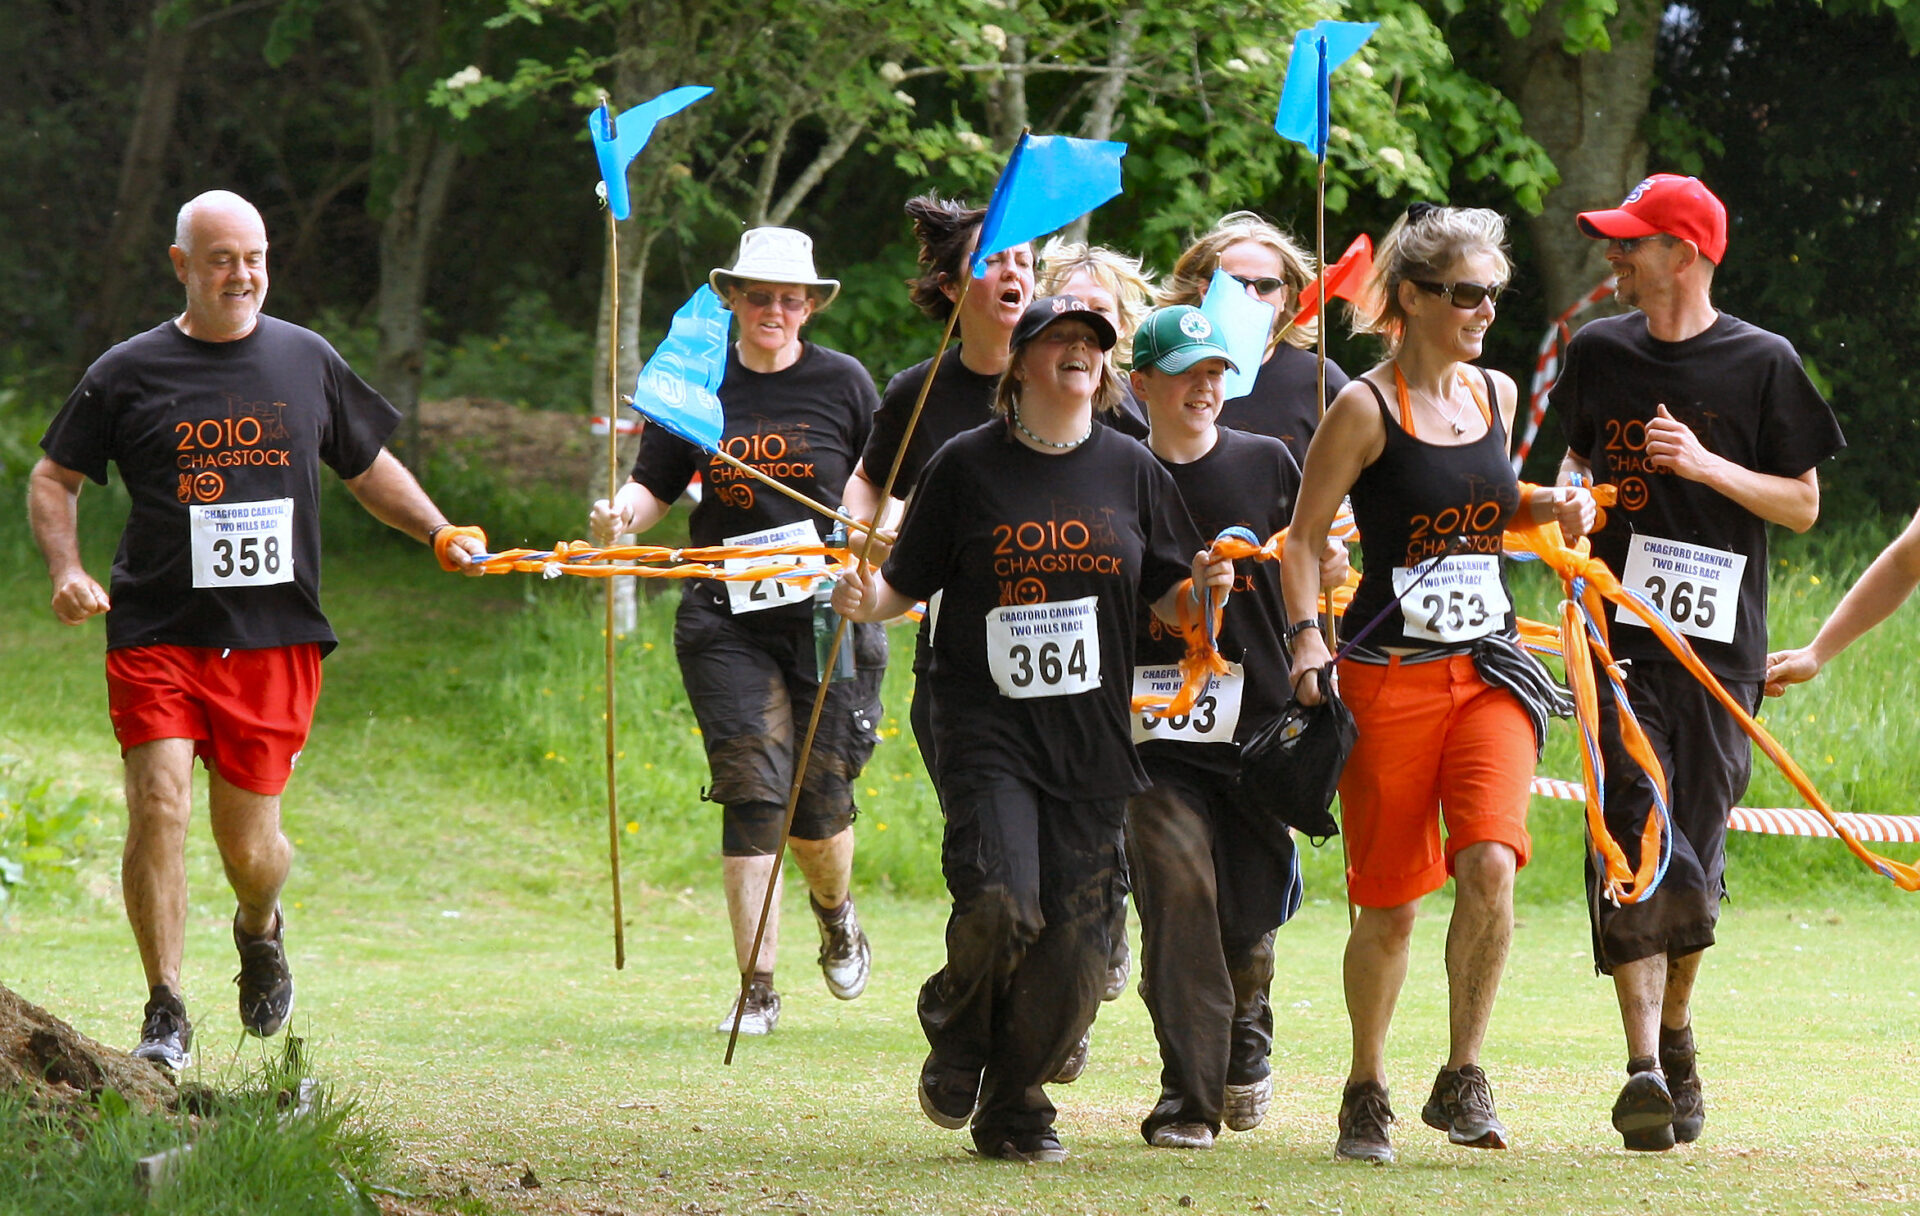 The Chagstock crew almost at the finish line.